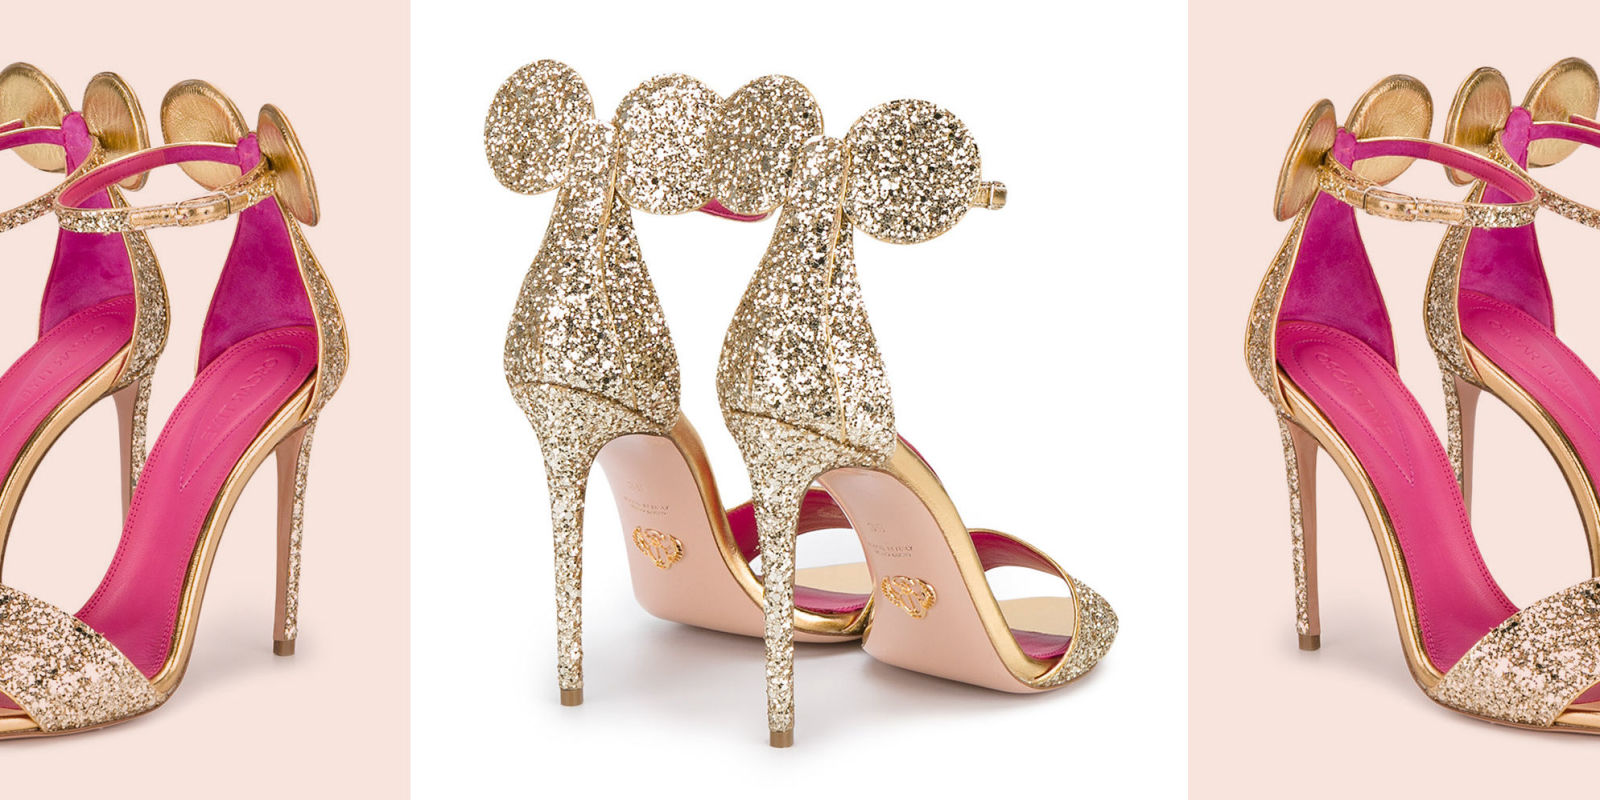 Minnie Mouse Heels From Oscar Tiye For 2018 Super Cute